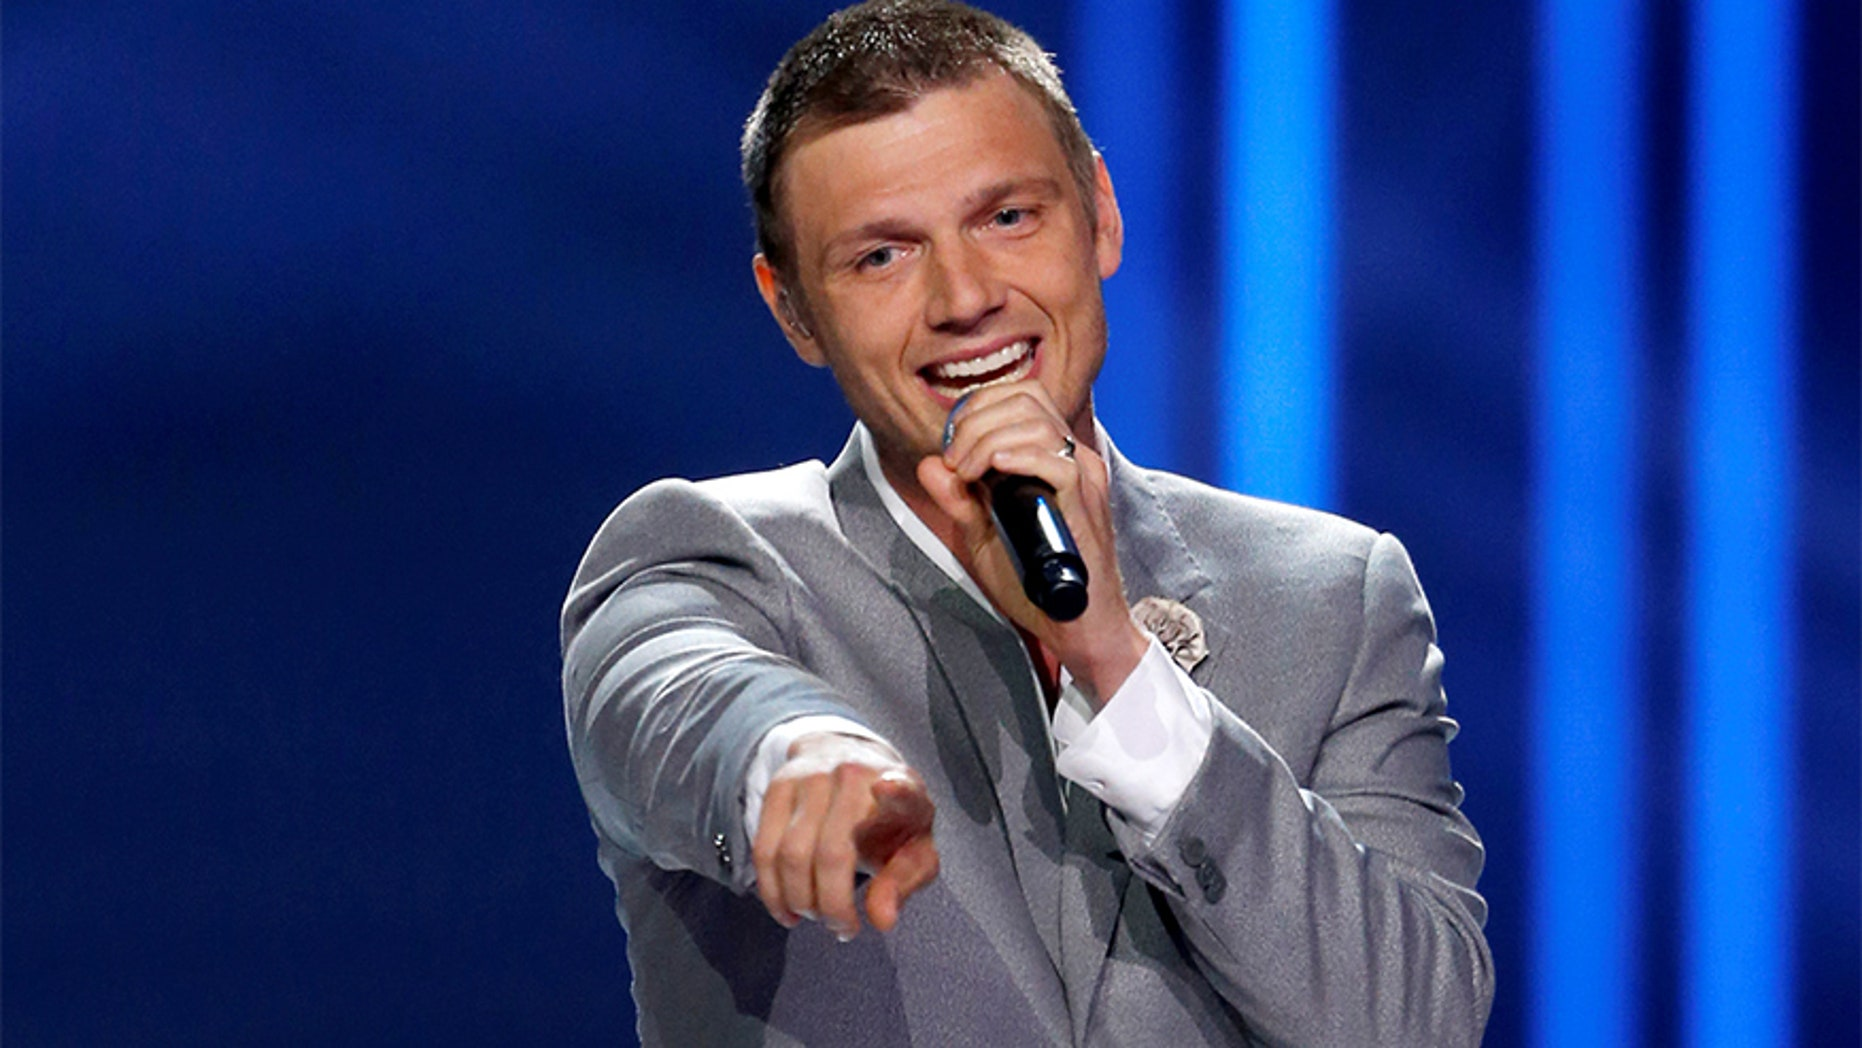 Nick Carter performs with the Backstreet Boys during the 2016 Miss USA pageant at the T-Mobile Arena in Las Vegas, Nevada, U.S., June 5, 2016. REUTERS/Steve Marcus - RTSG5GV